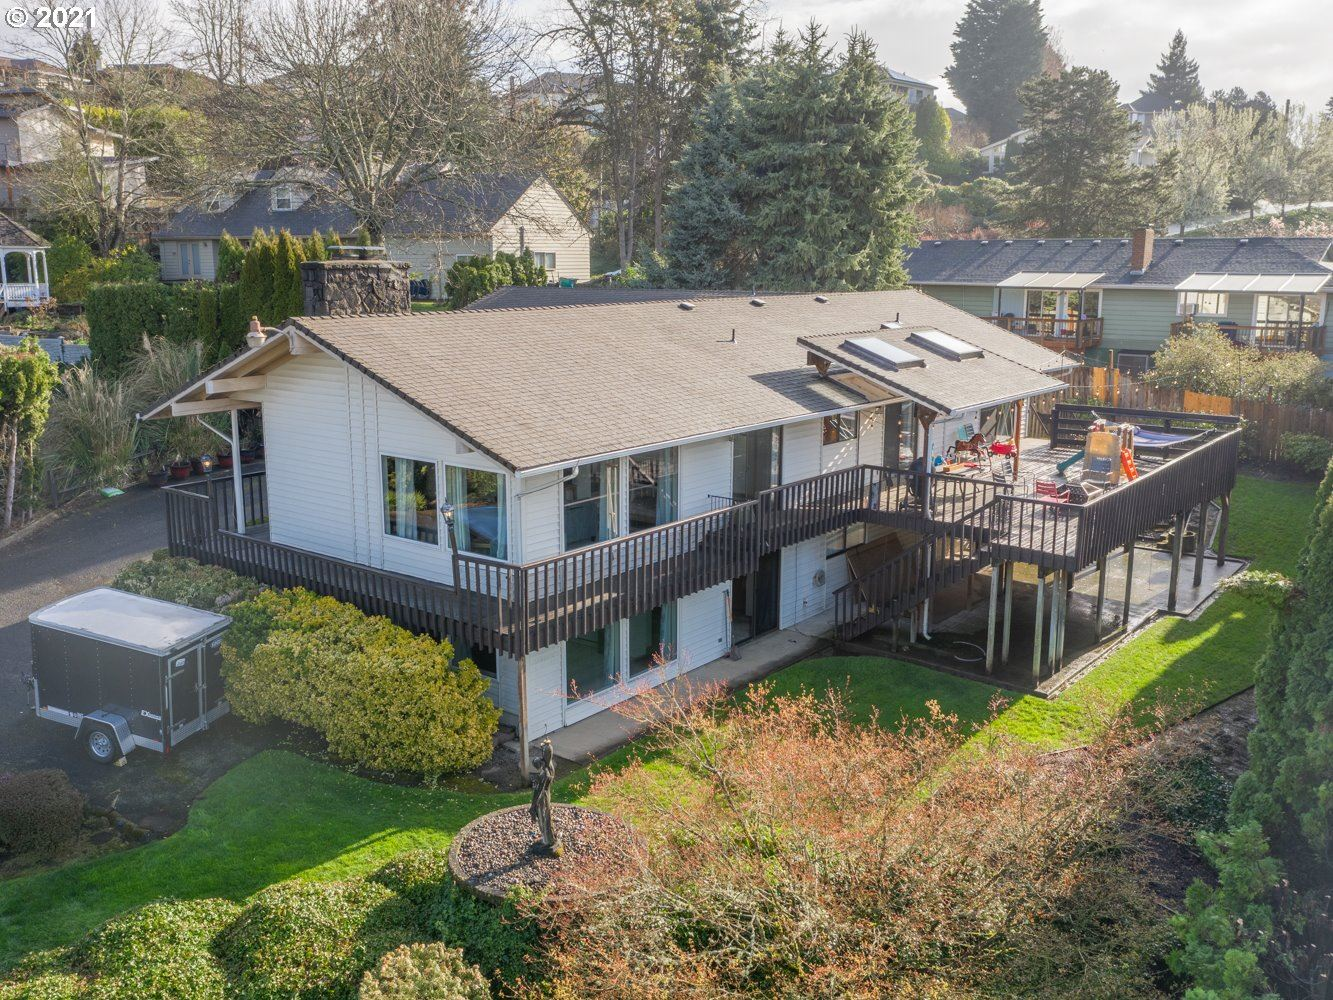 7907 NW FRUIT VALLEY RD, Vancouver, WA 98665 - MLS#: 21572946